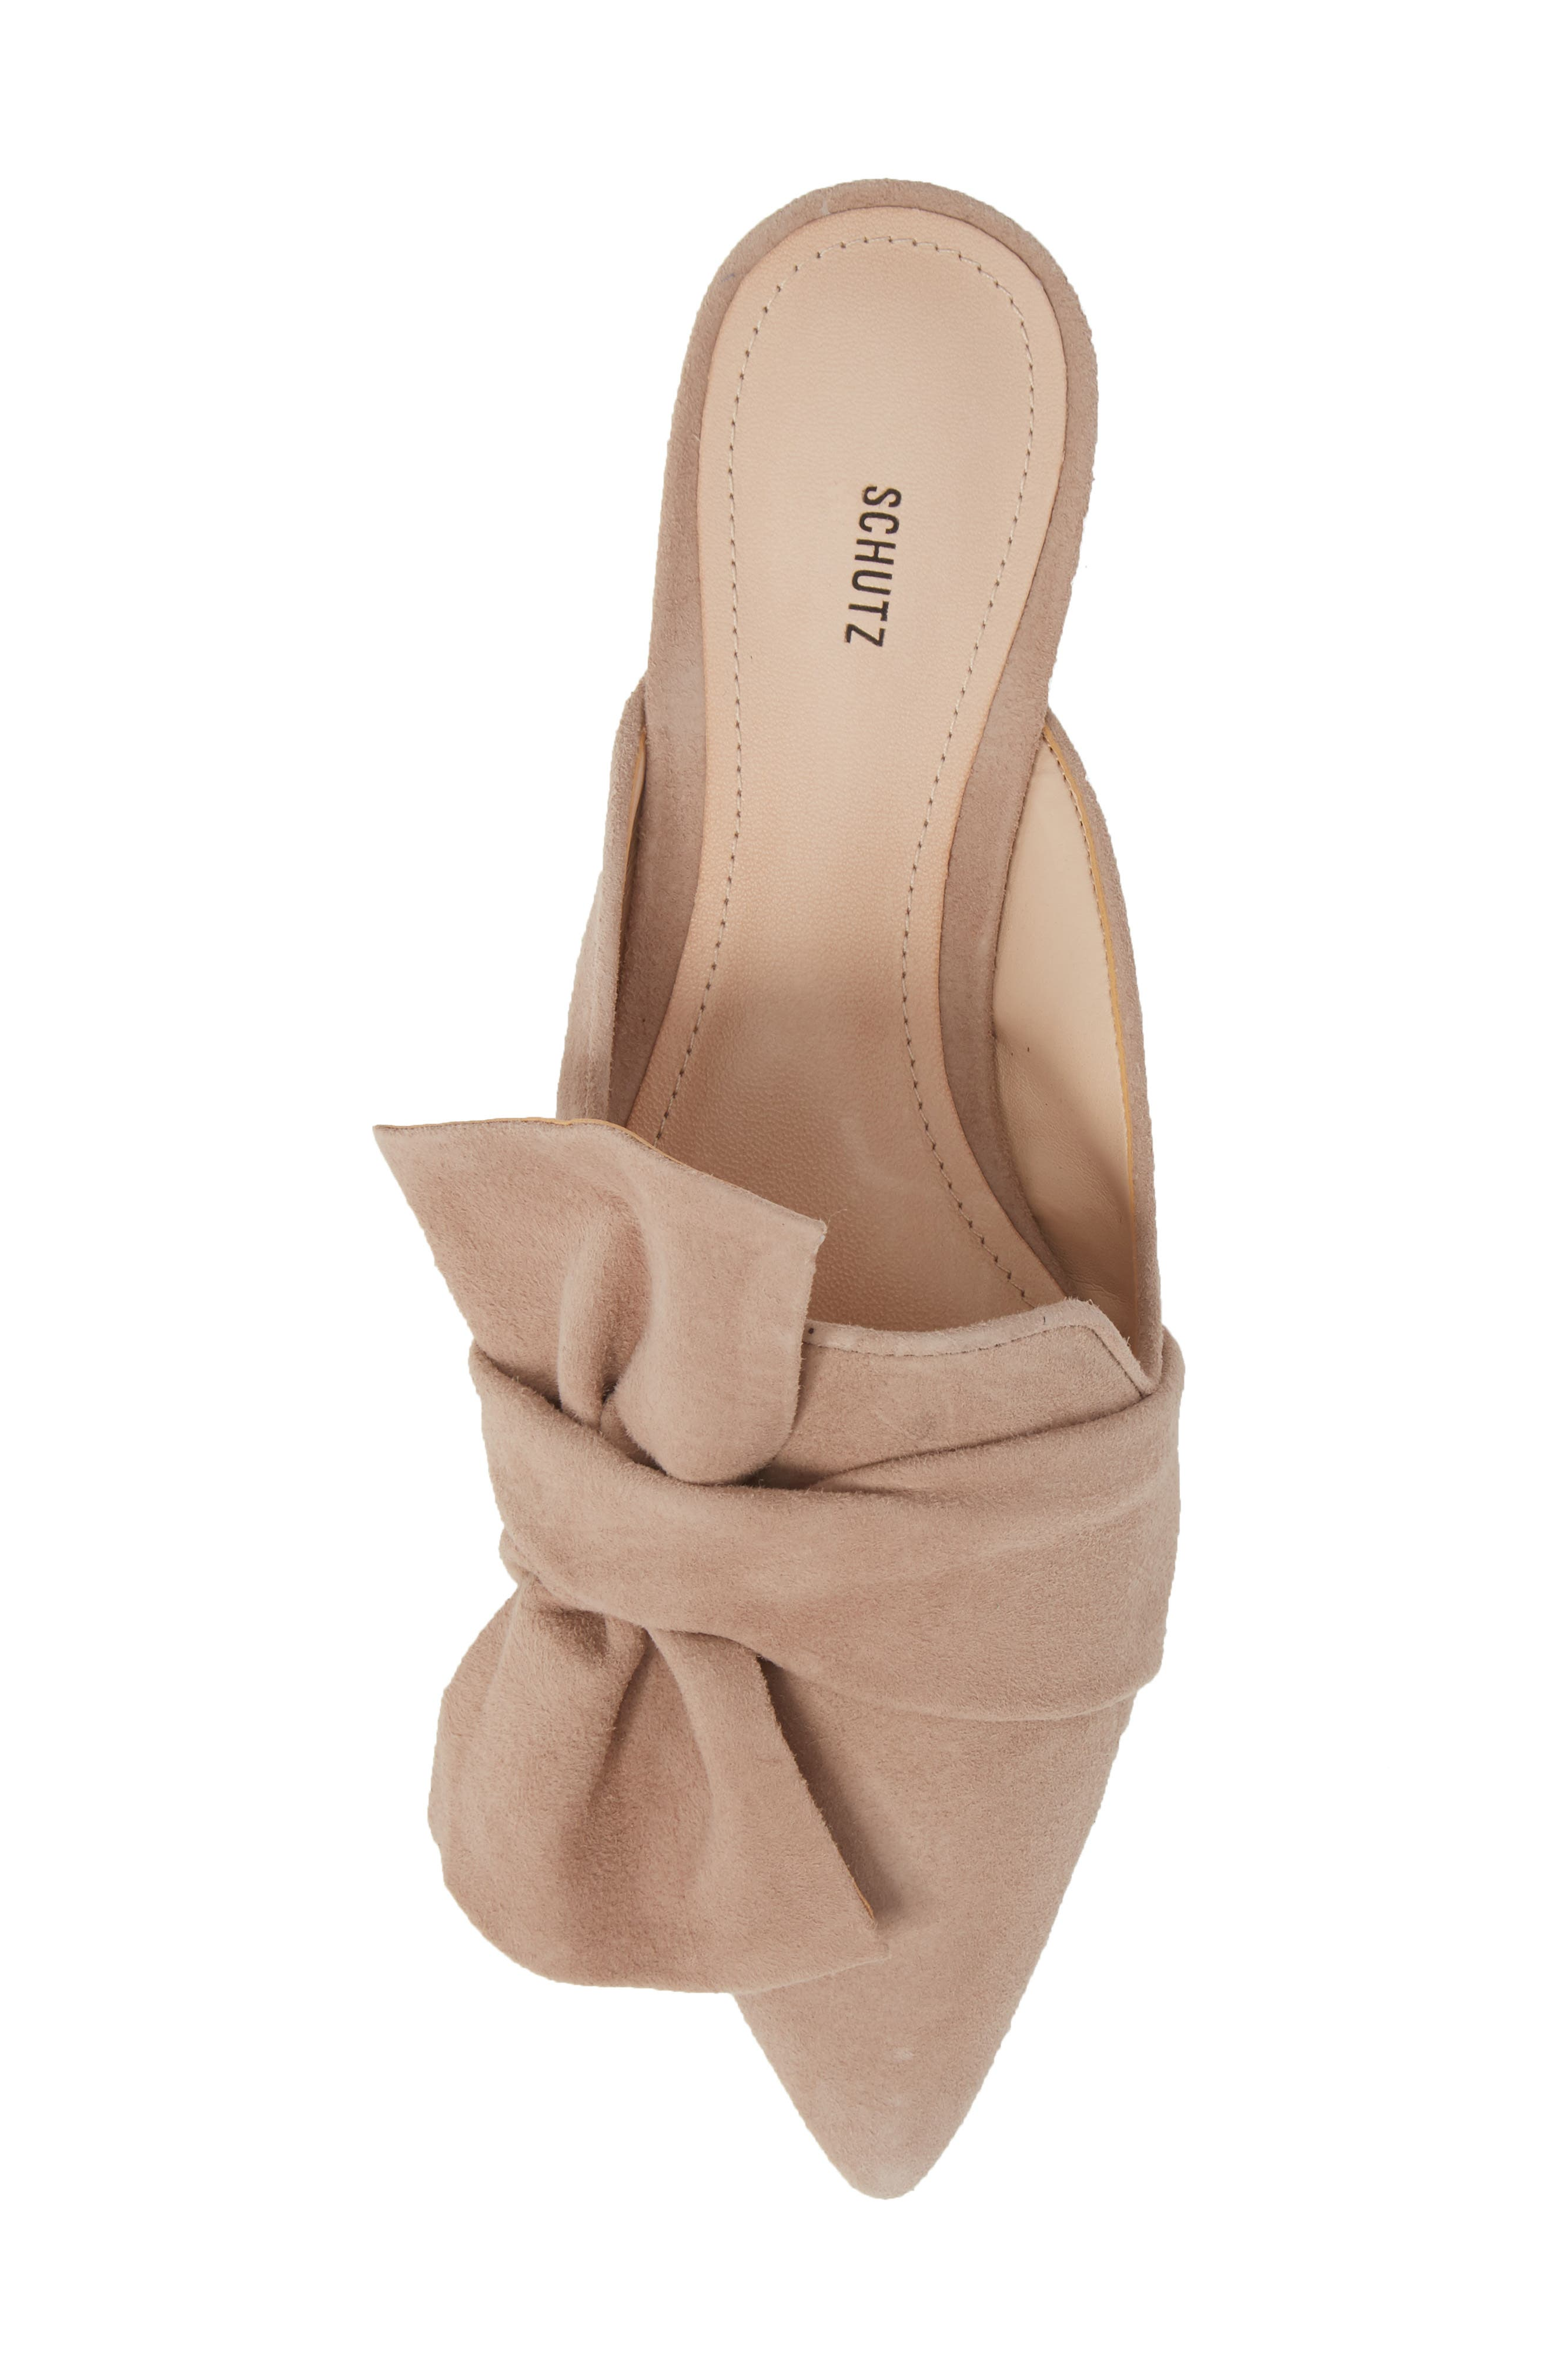 D'Ana Knotted Loafer Mule,                             Alternate thumbnail 5, color,                             NEUTRAL SUEDE